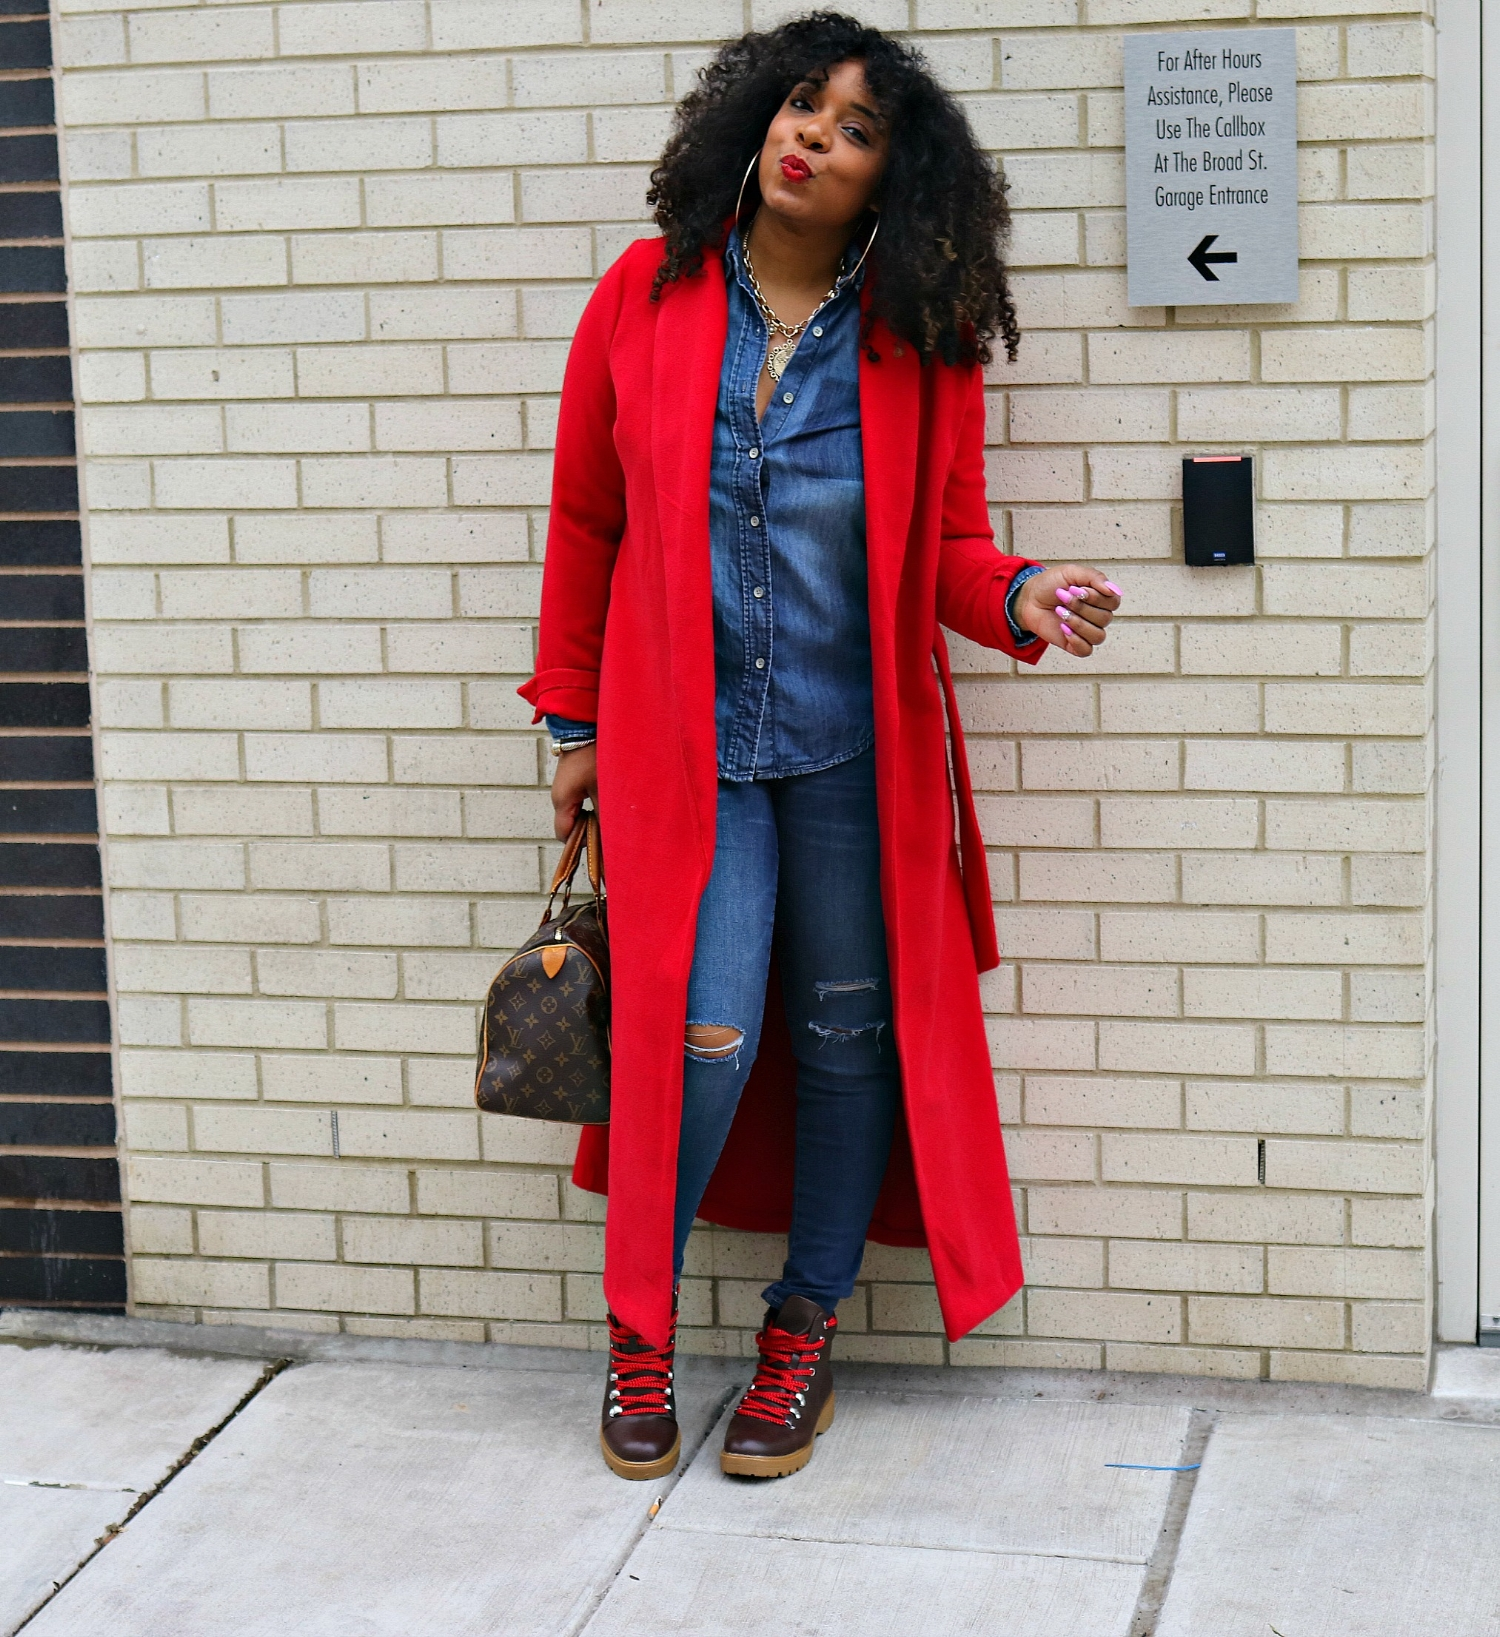 Red Fall Wrap Coat, Denim on Denim, Fall Fashion, Hiker Boots, Casual Flow, LV Speedy, Fall Streetstyle, Fall 2018 outfit